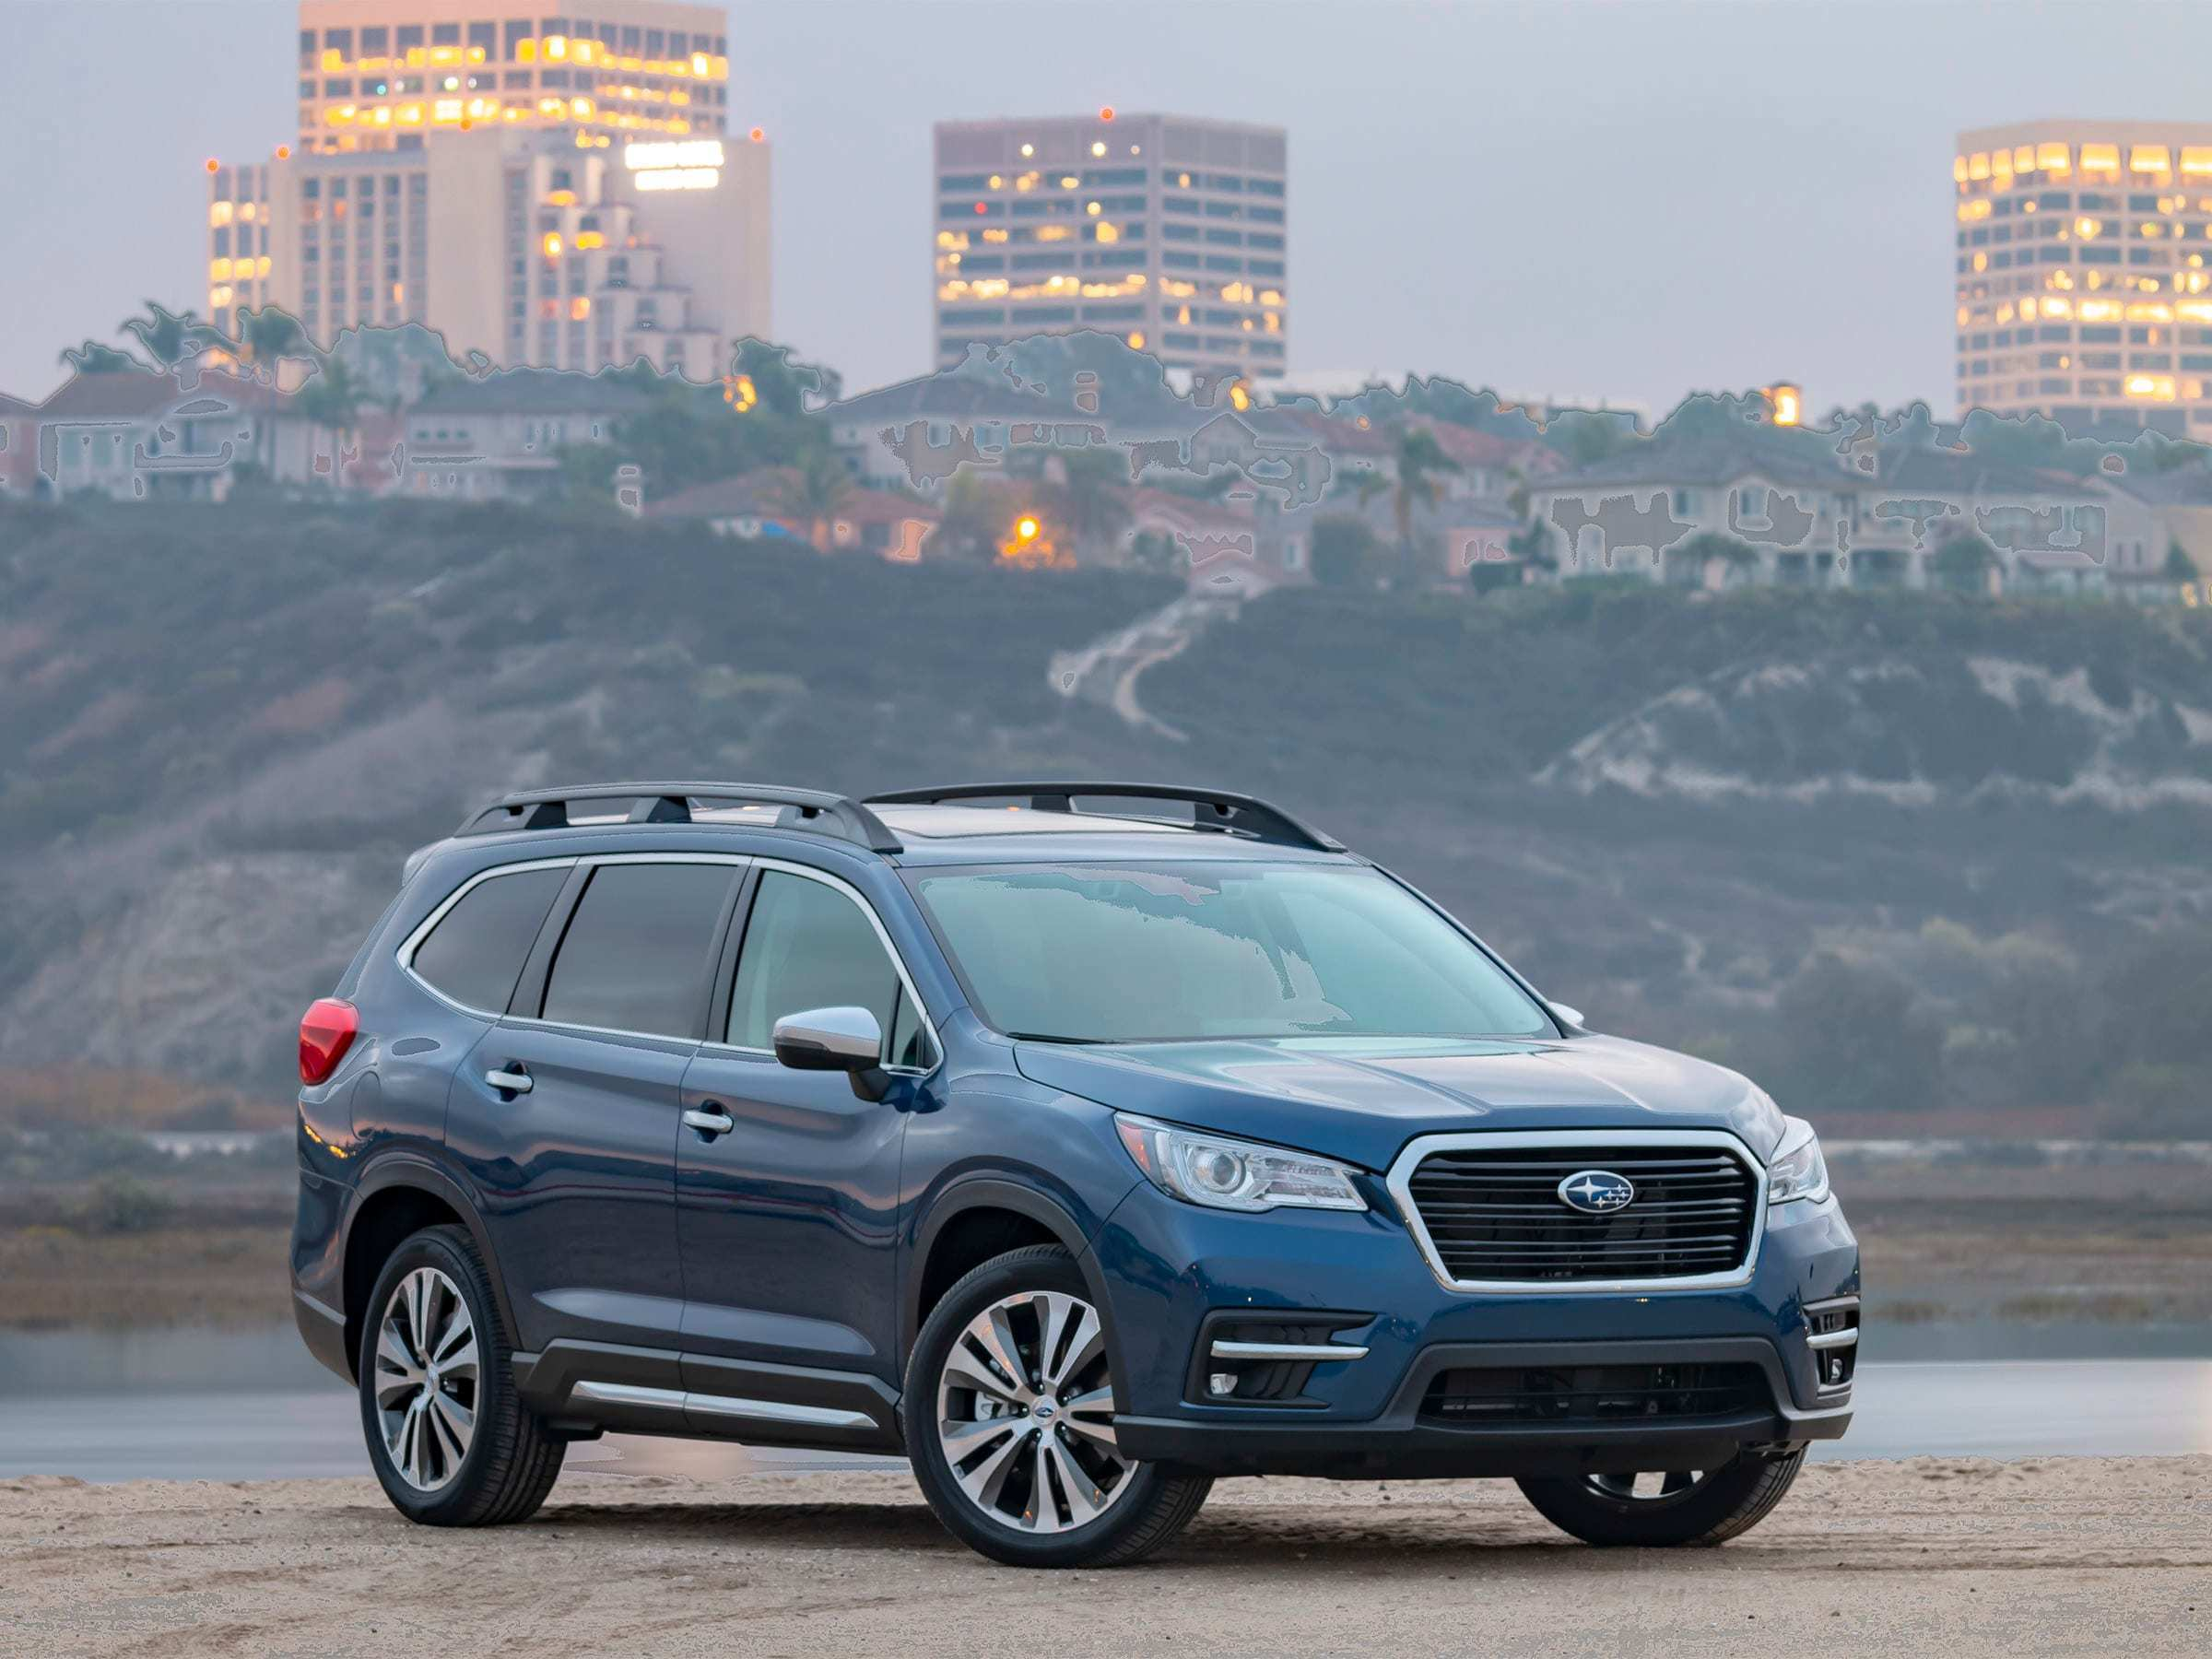 31 Best Review 2019 Subaru Ascent Mpg New Concept by 2019 Subaru Ascent Mpg